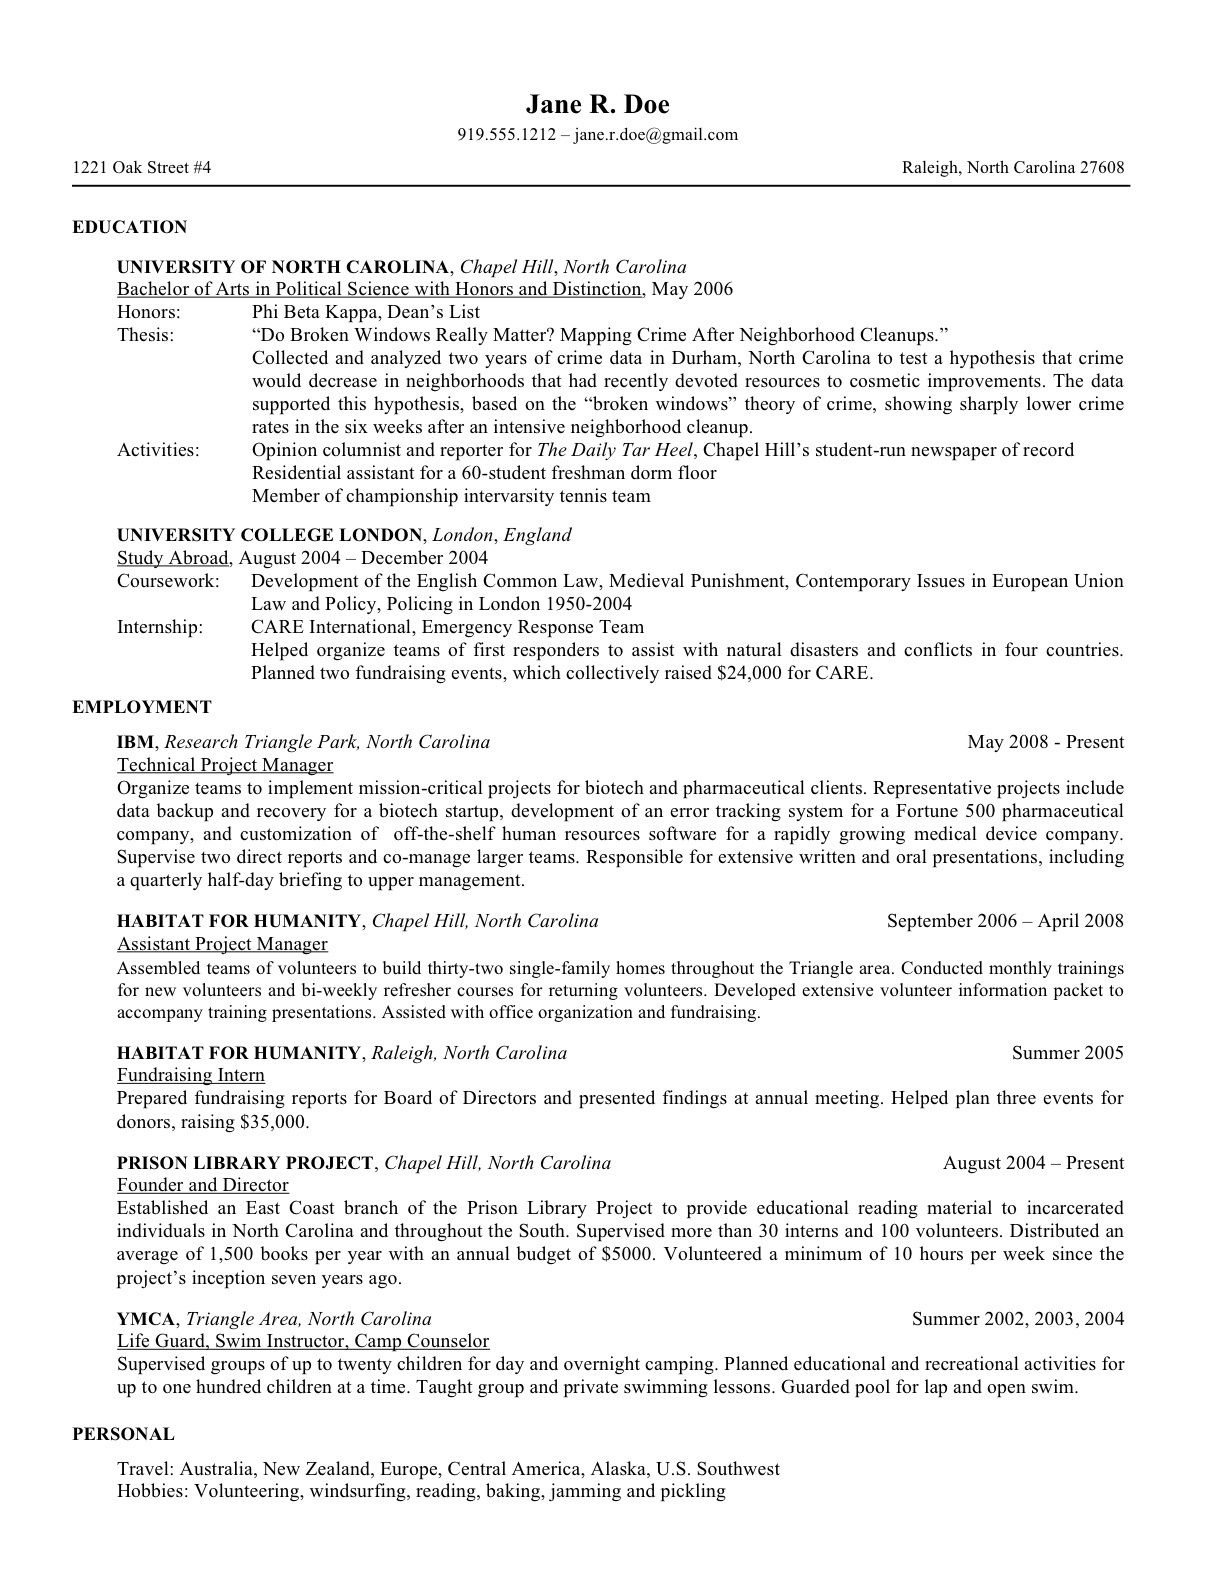 002 Rare Grad School Application Cv Template High Resolution  Graduate Microsoft WordFull